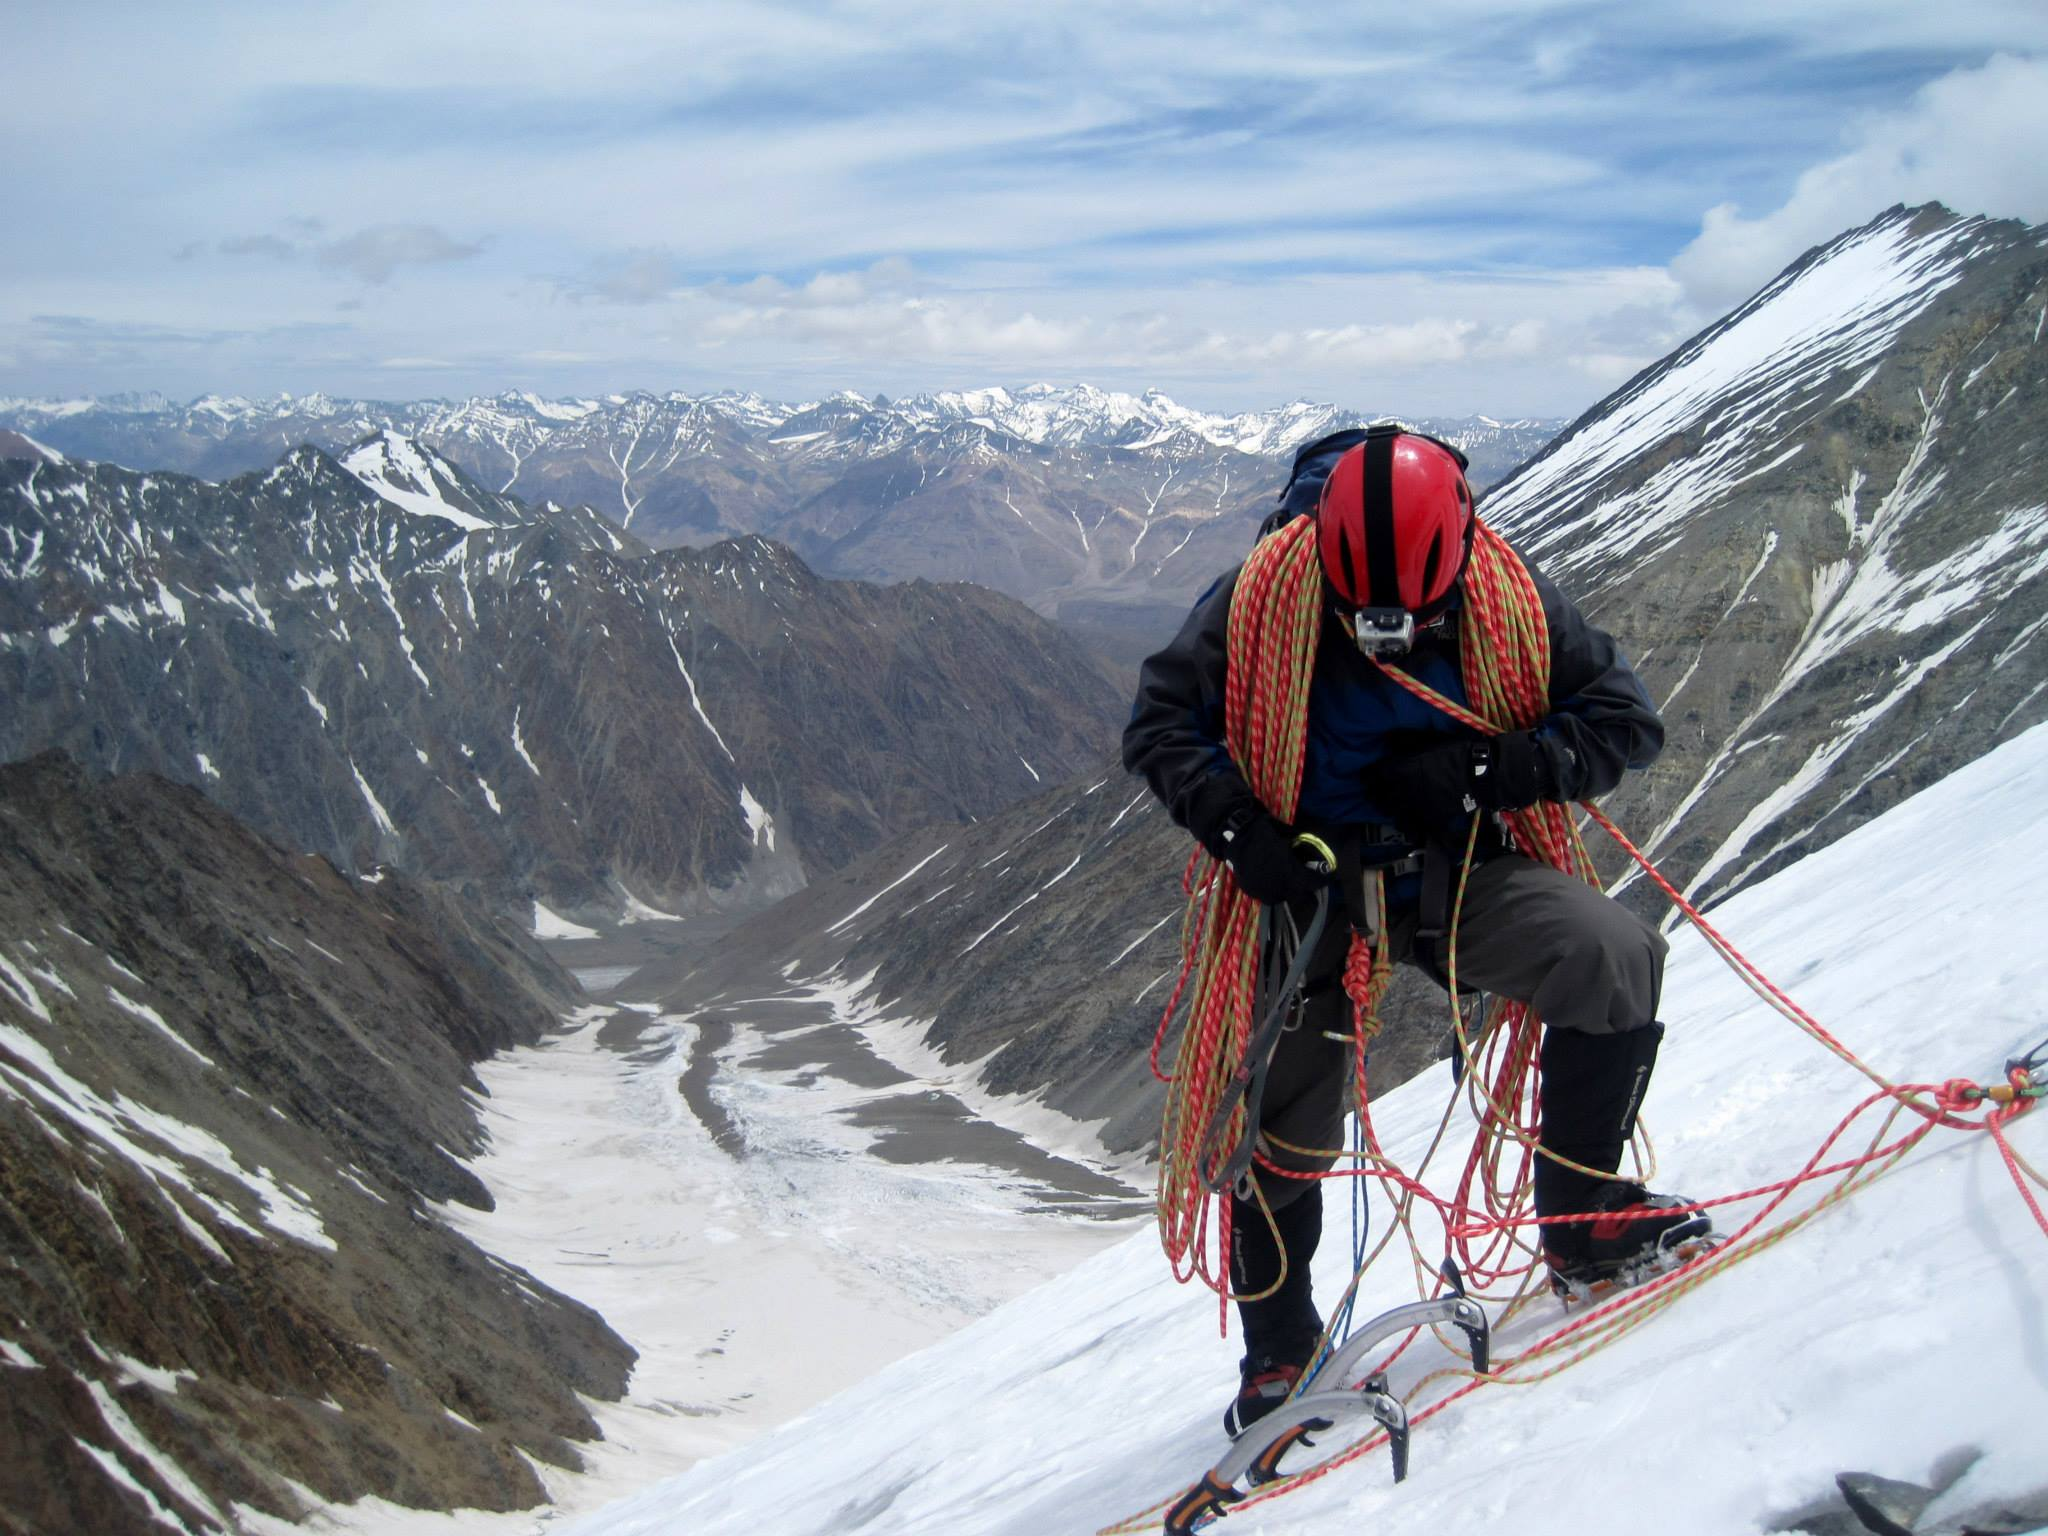 mountain climbing expeditions challenged - HD2048×1536